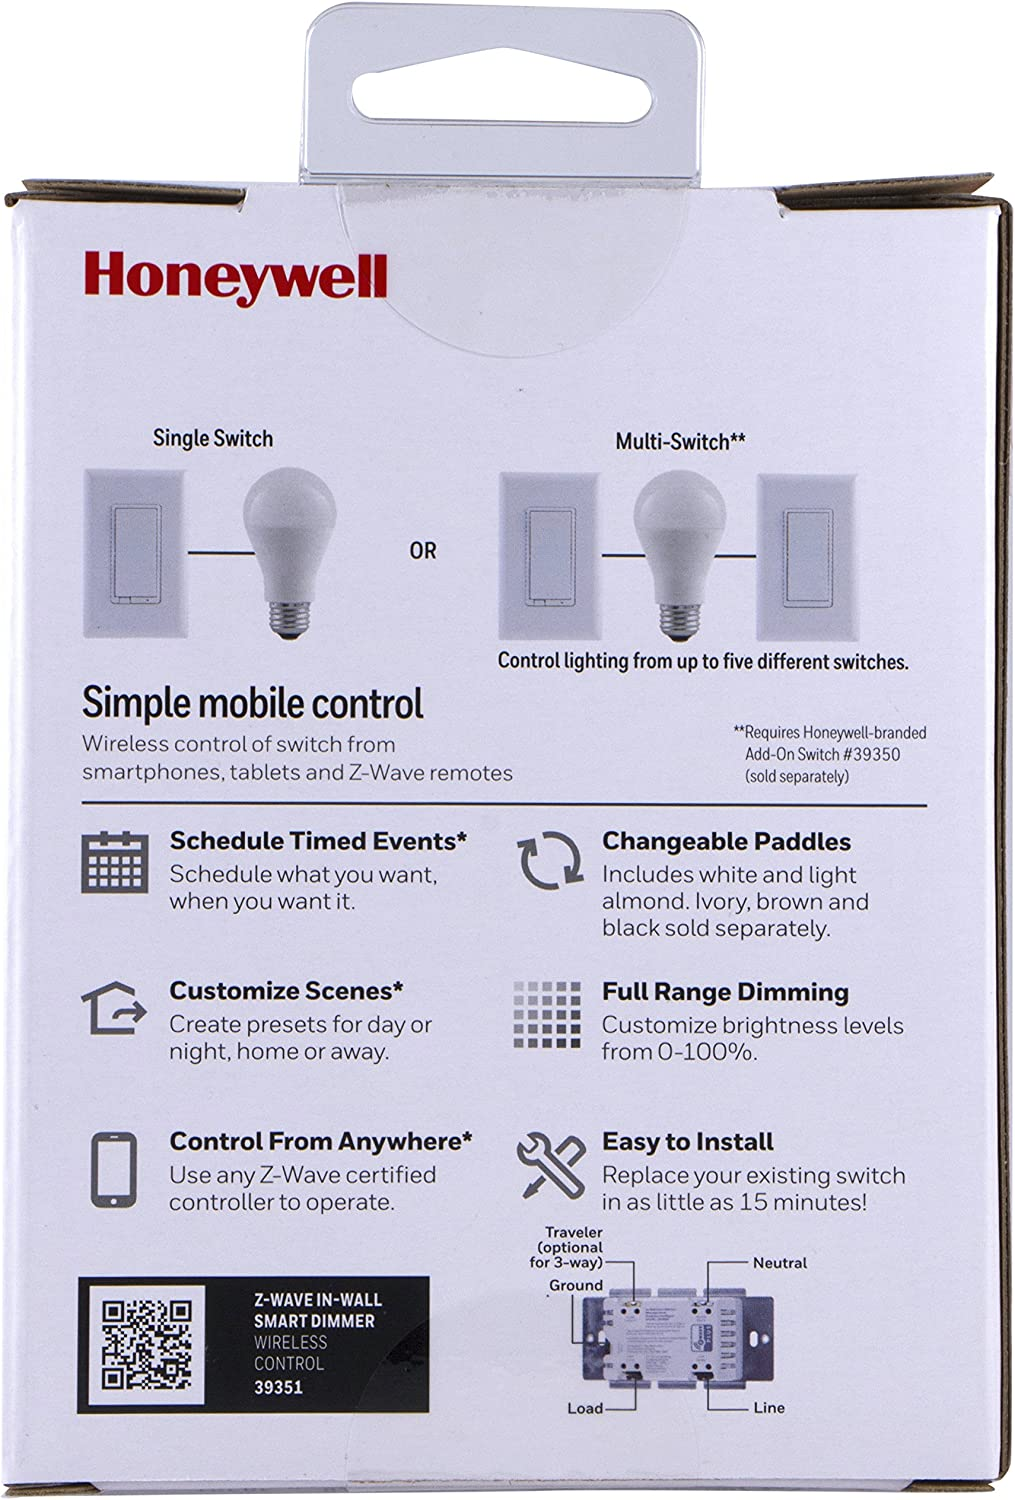 Built-In Repeater /& Range Extender Honeywell Z-Wave Plus Smart Light Dimmer Switch 39351 Interchangeable White /& Almond ZWave Hub Required Wink Alexa Compatible In-Wall Paddle SmartThings